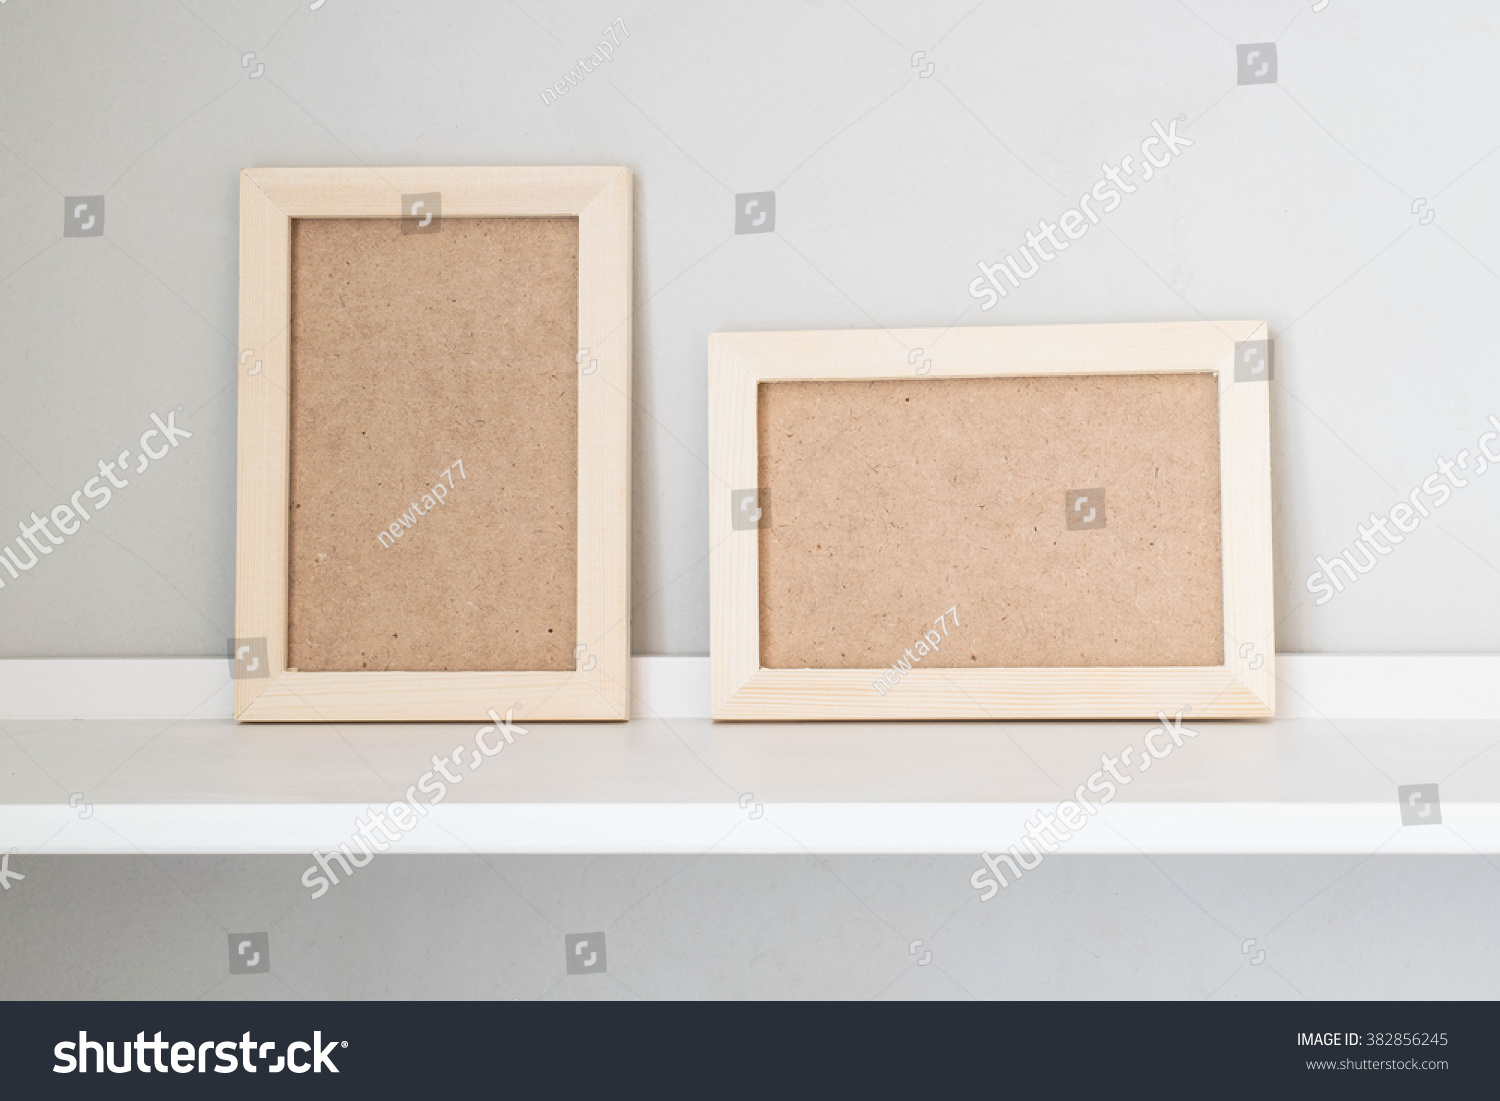 Wooden Picture Frame On White Shelf Stock Photo Edit Now 382856245